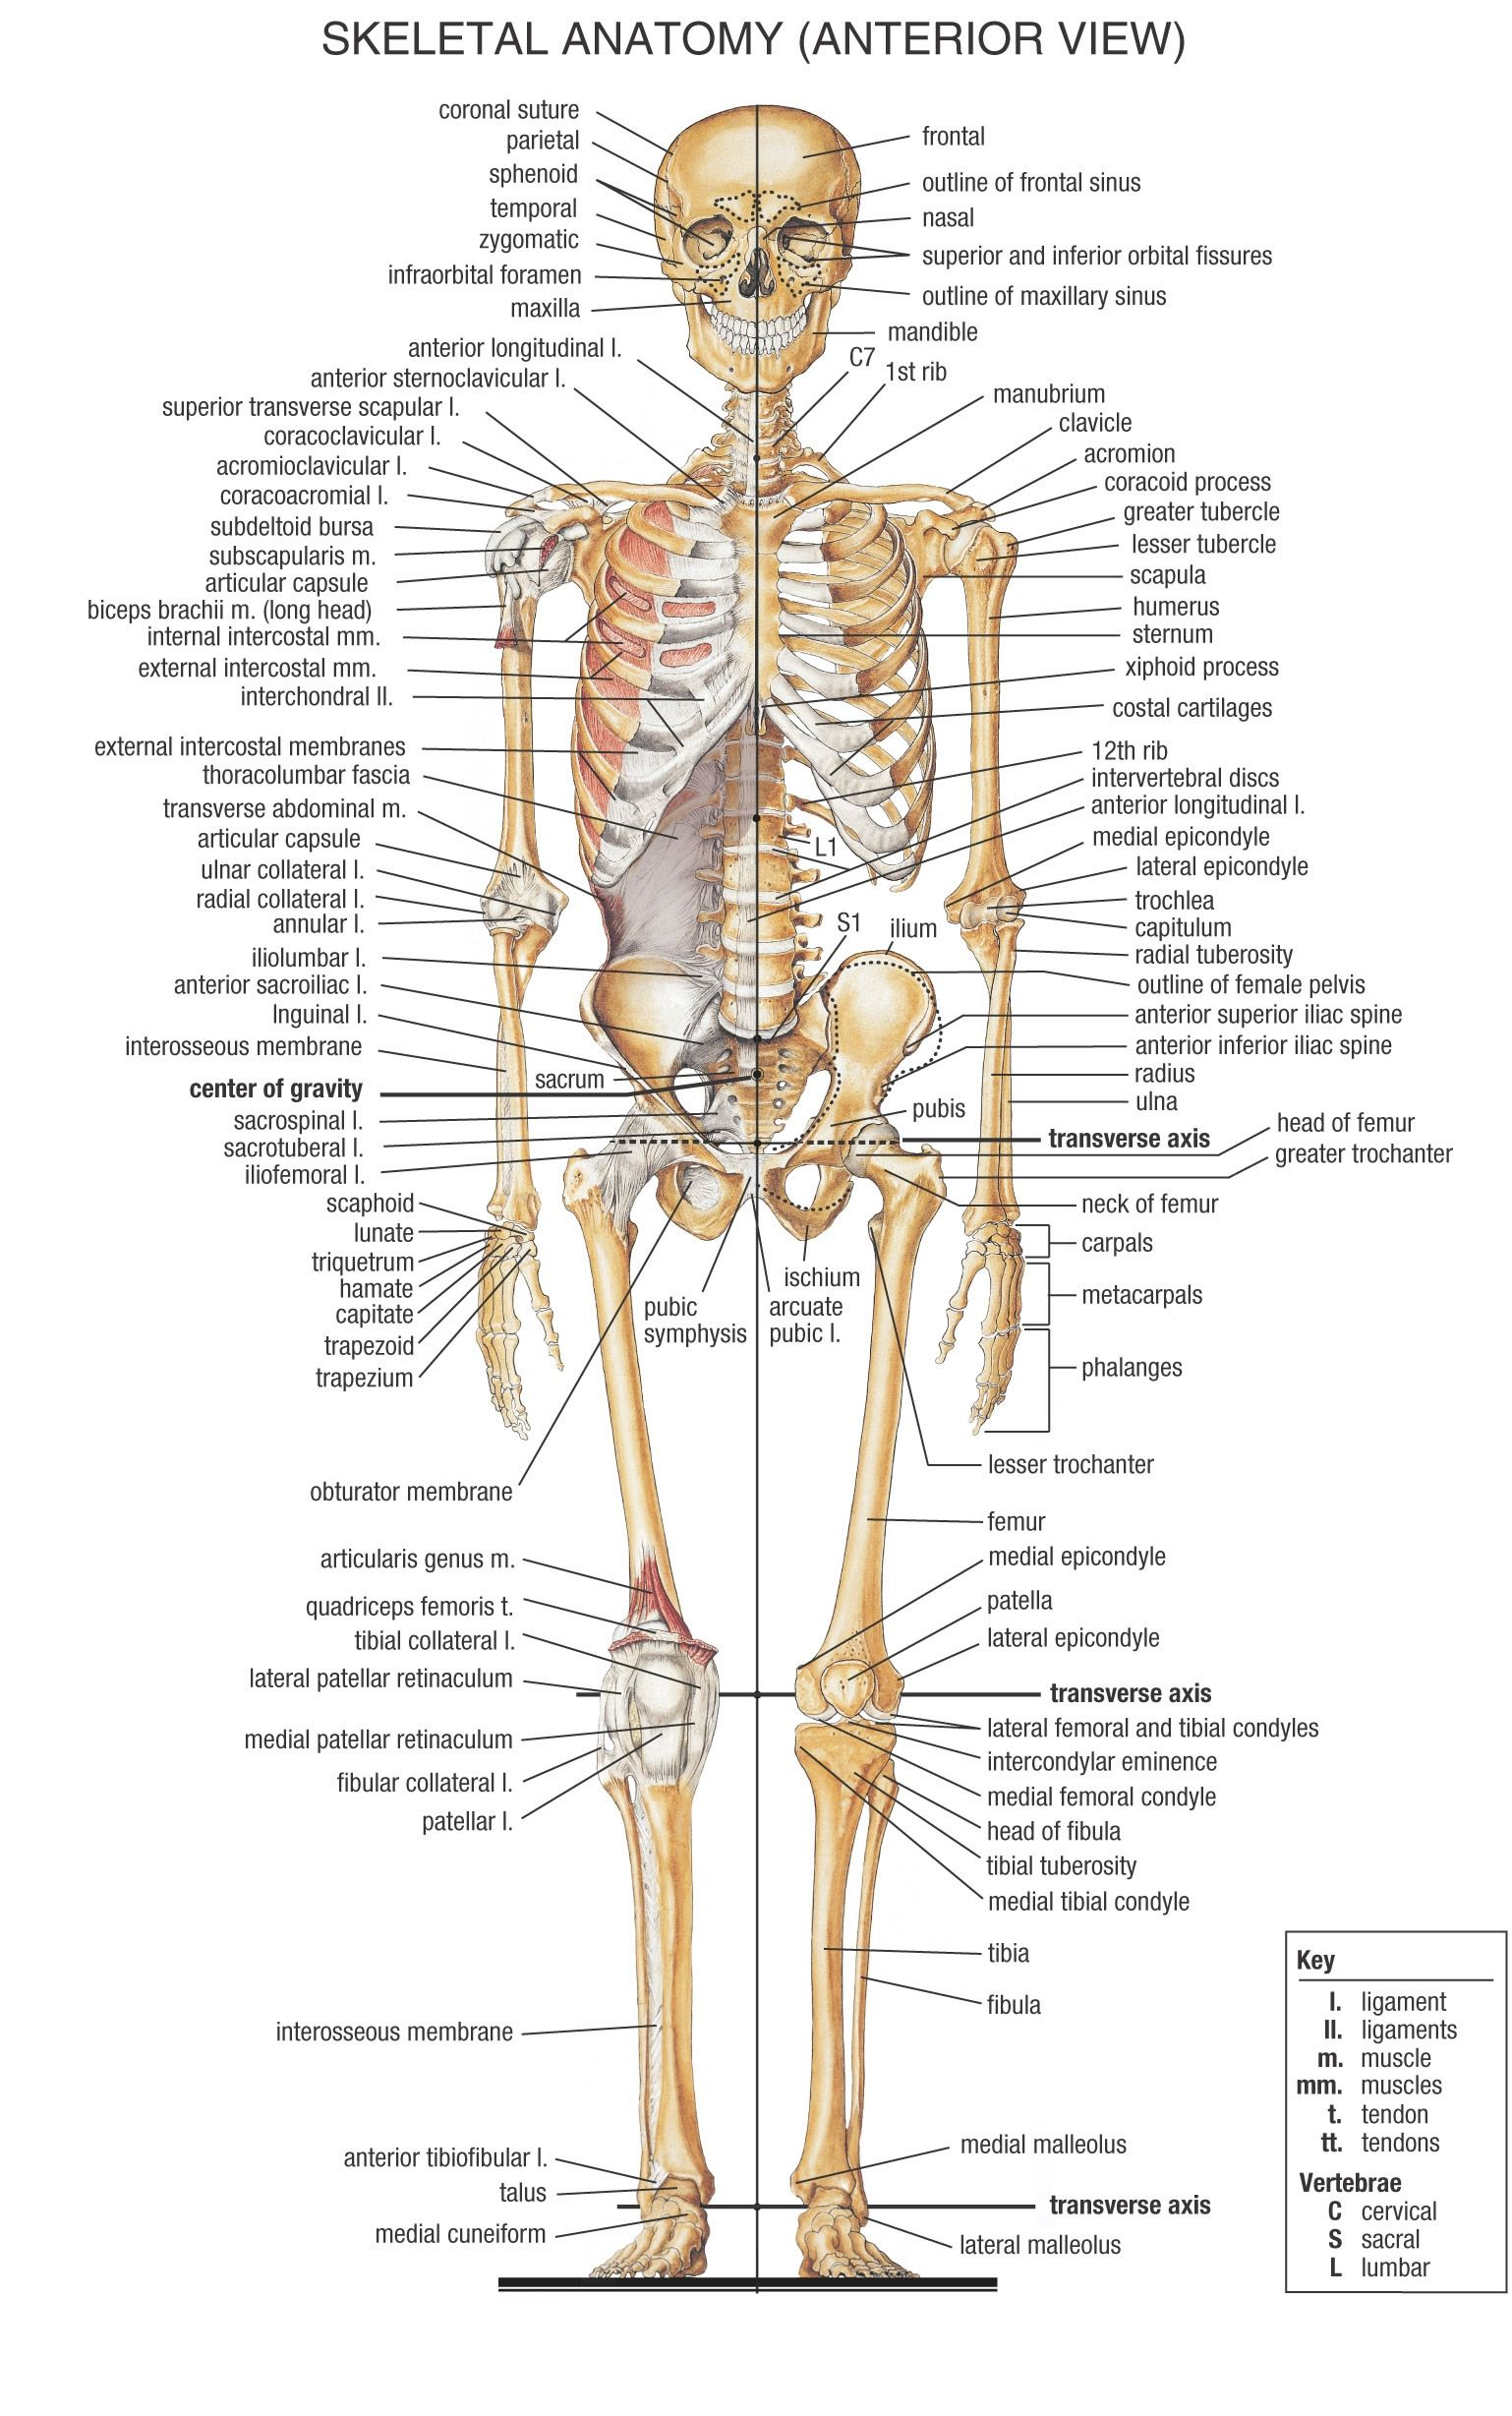 Human Anatomy - skeletal anatomy | Wellness | Pinterest | Anatomía ...